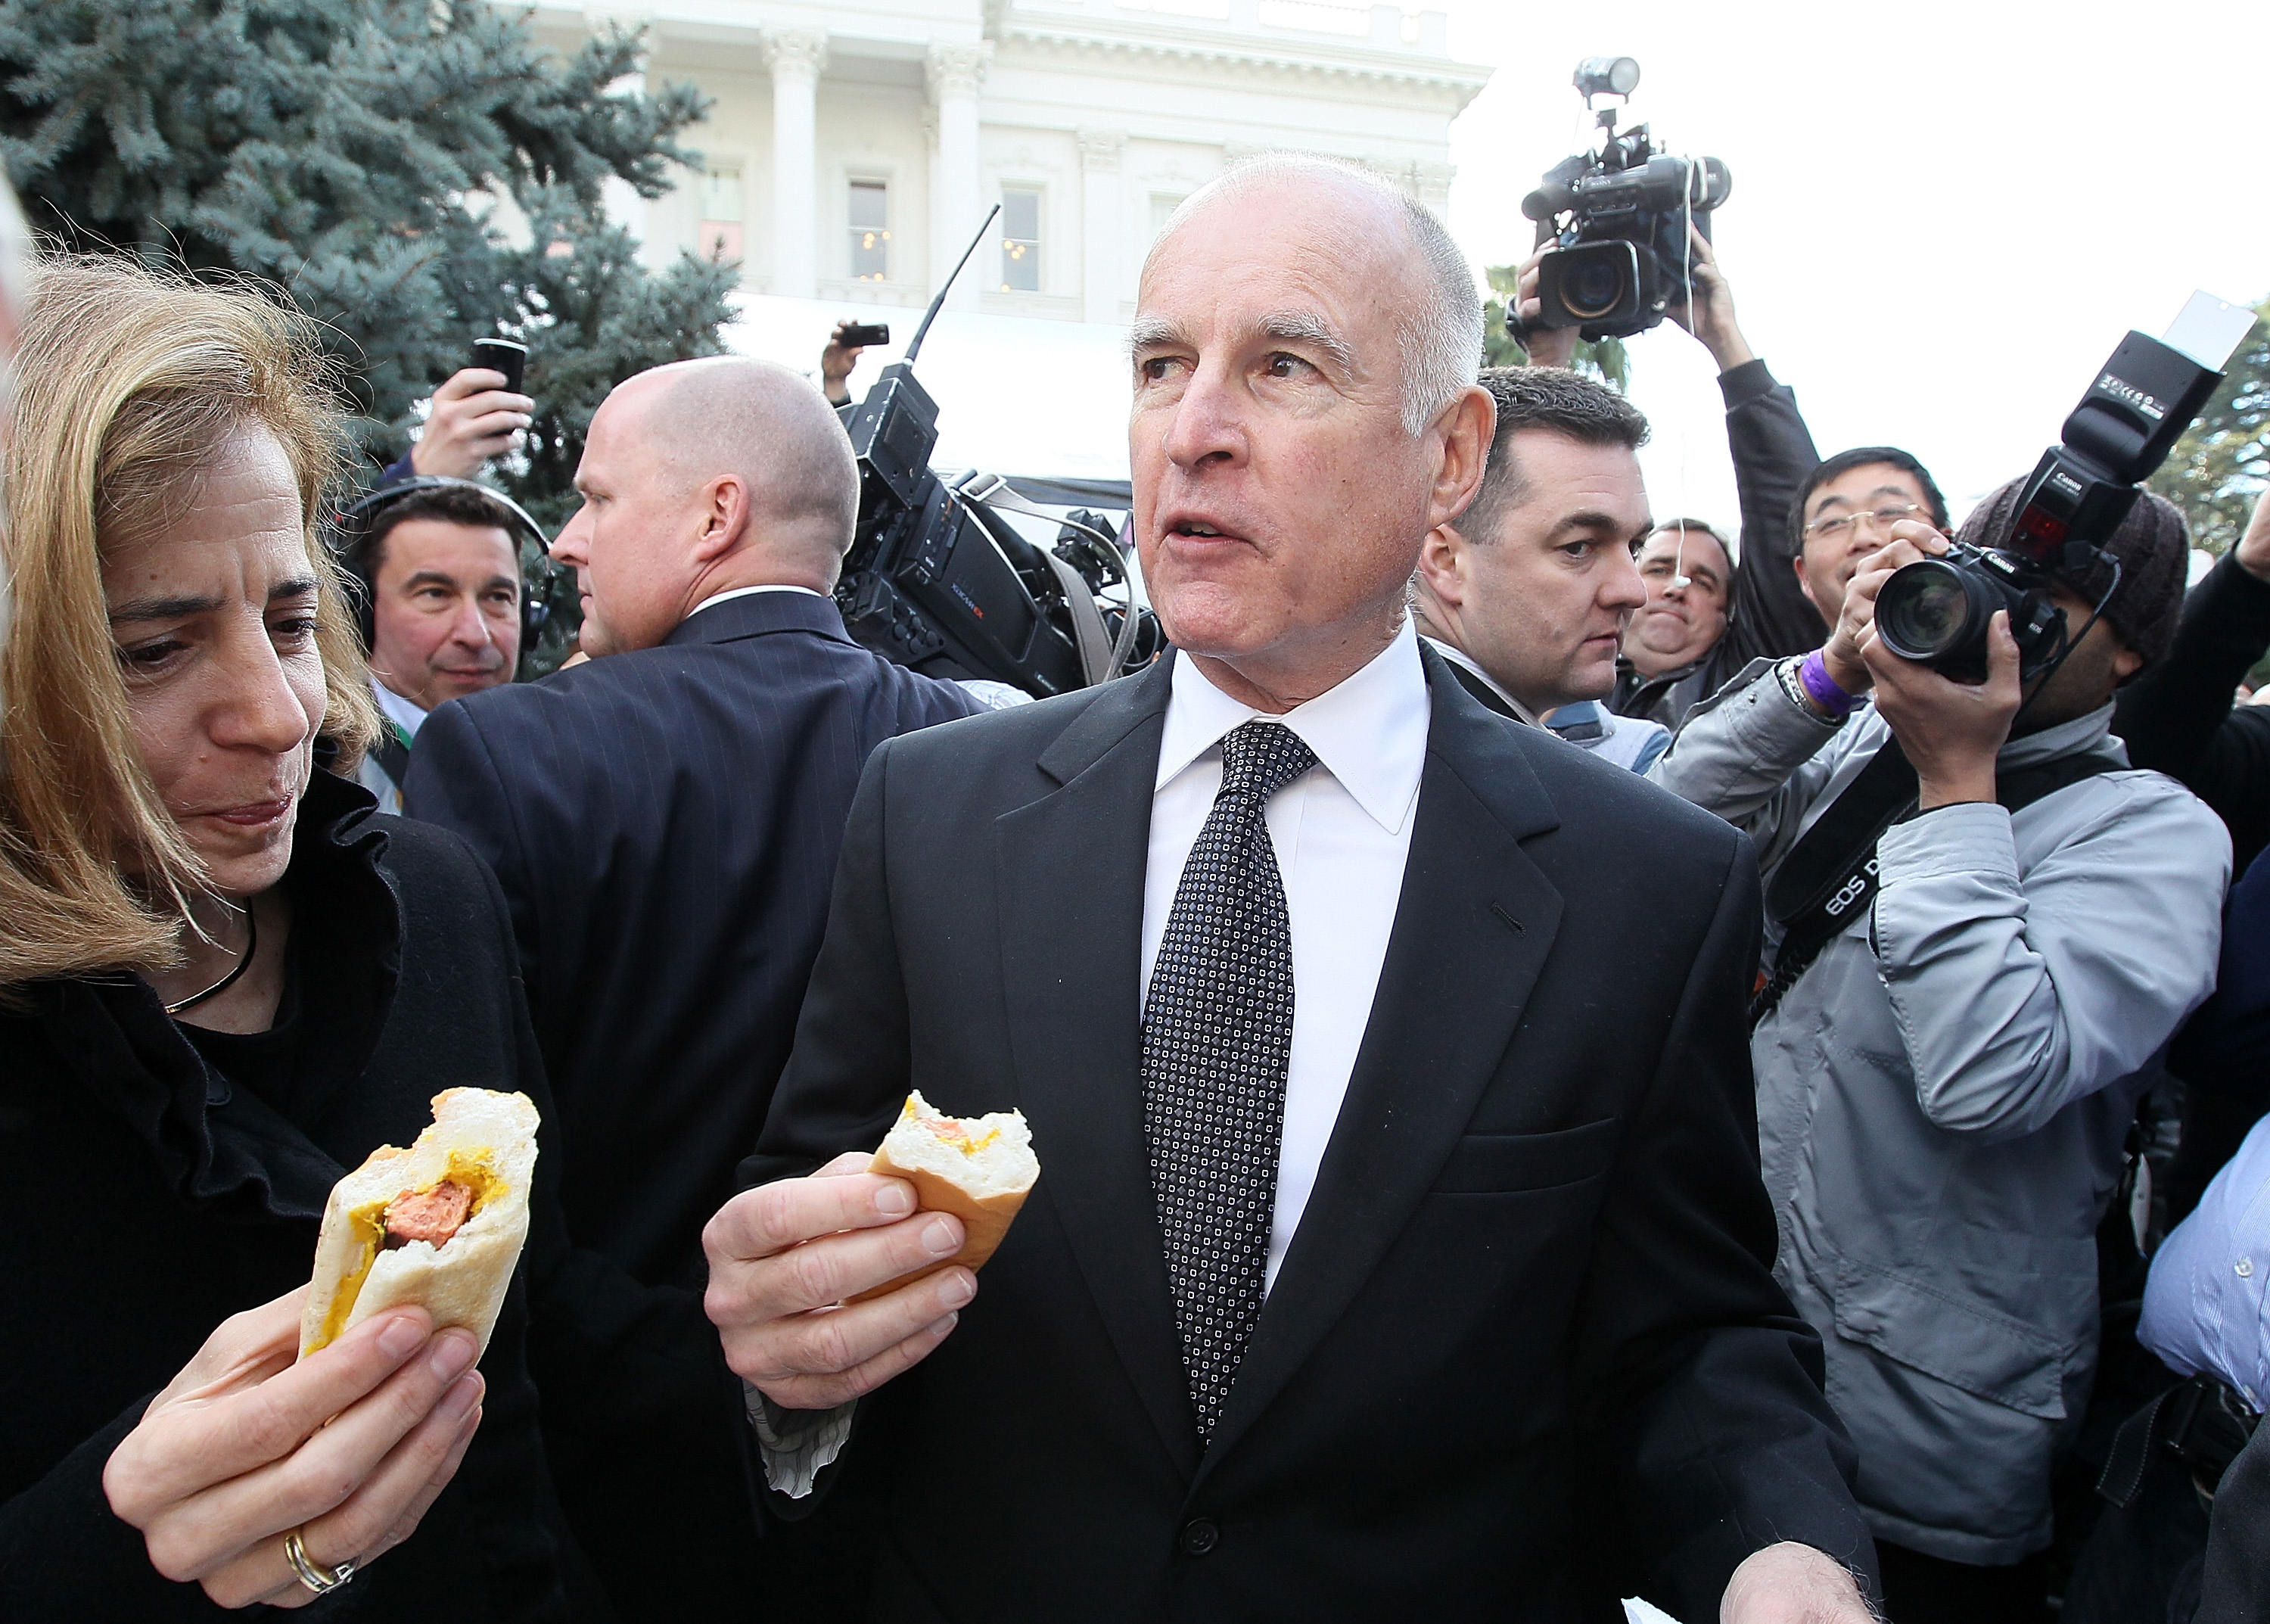 A low budget inauguration included a meal of hot dogs on the lawn for new Gov. Jerry Brown.